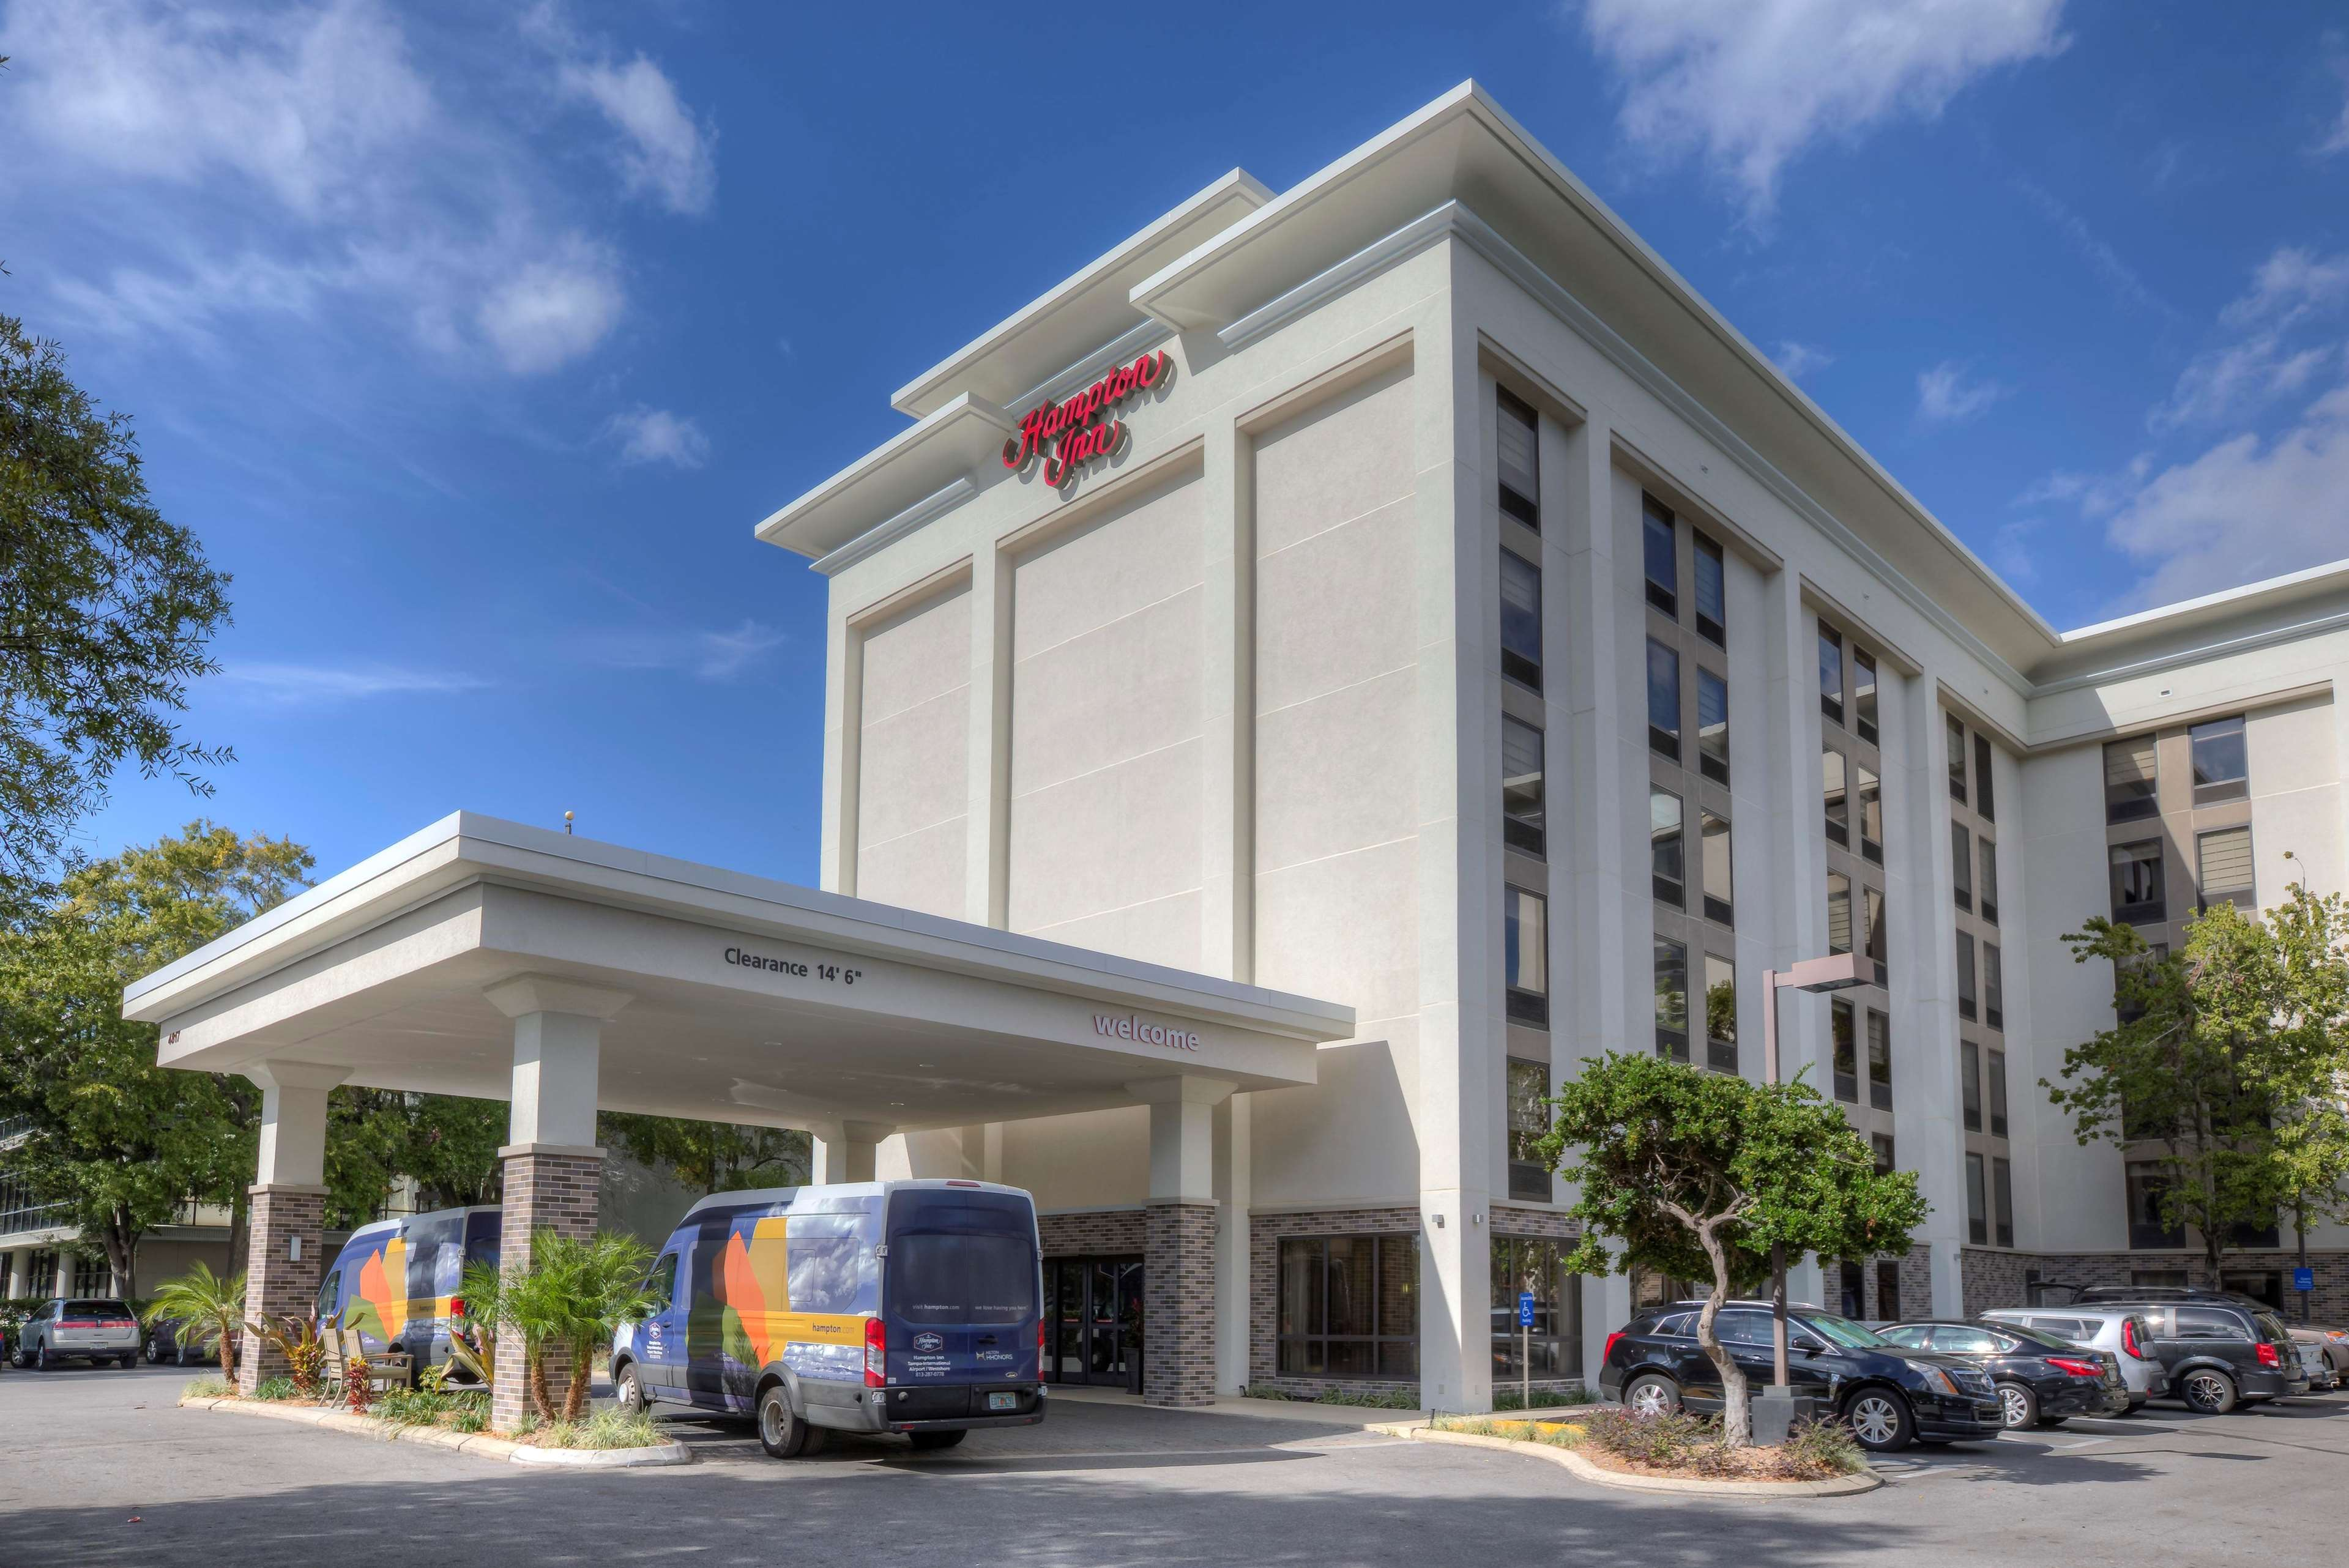 Hampton Inn Tampa Veterans Expwy Airport North Tampa Fl Business Directory